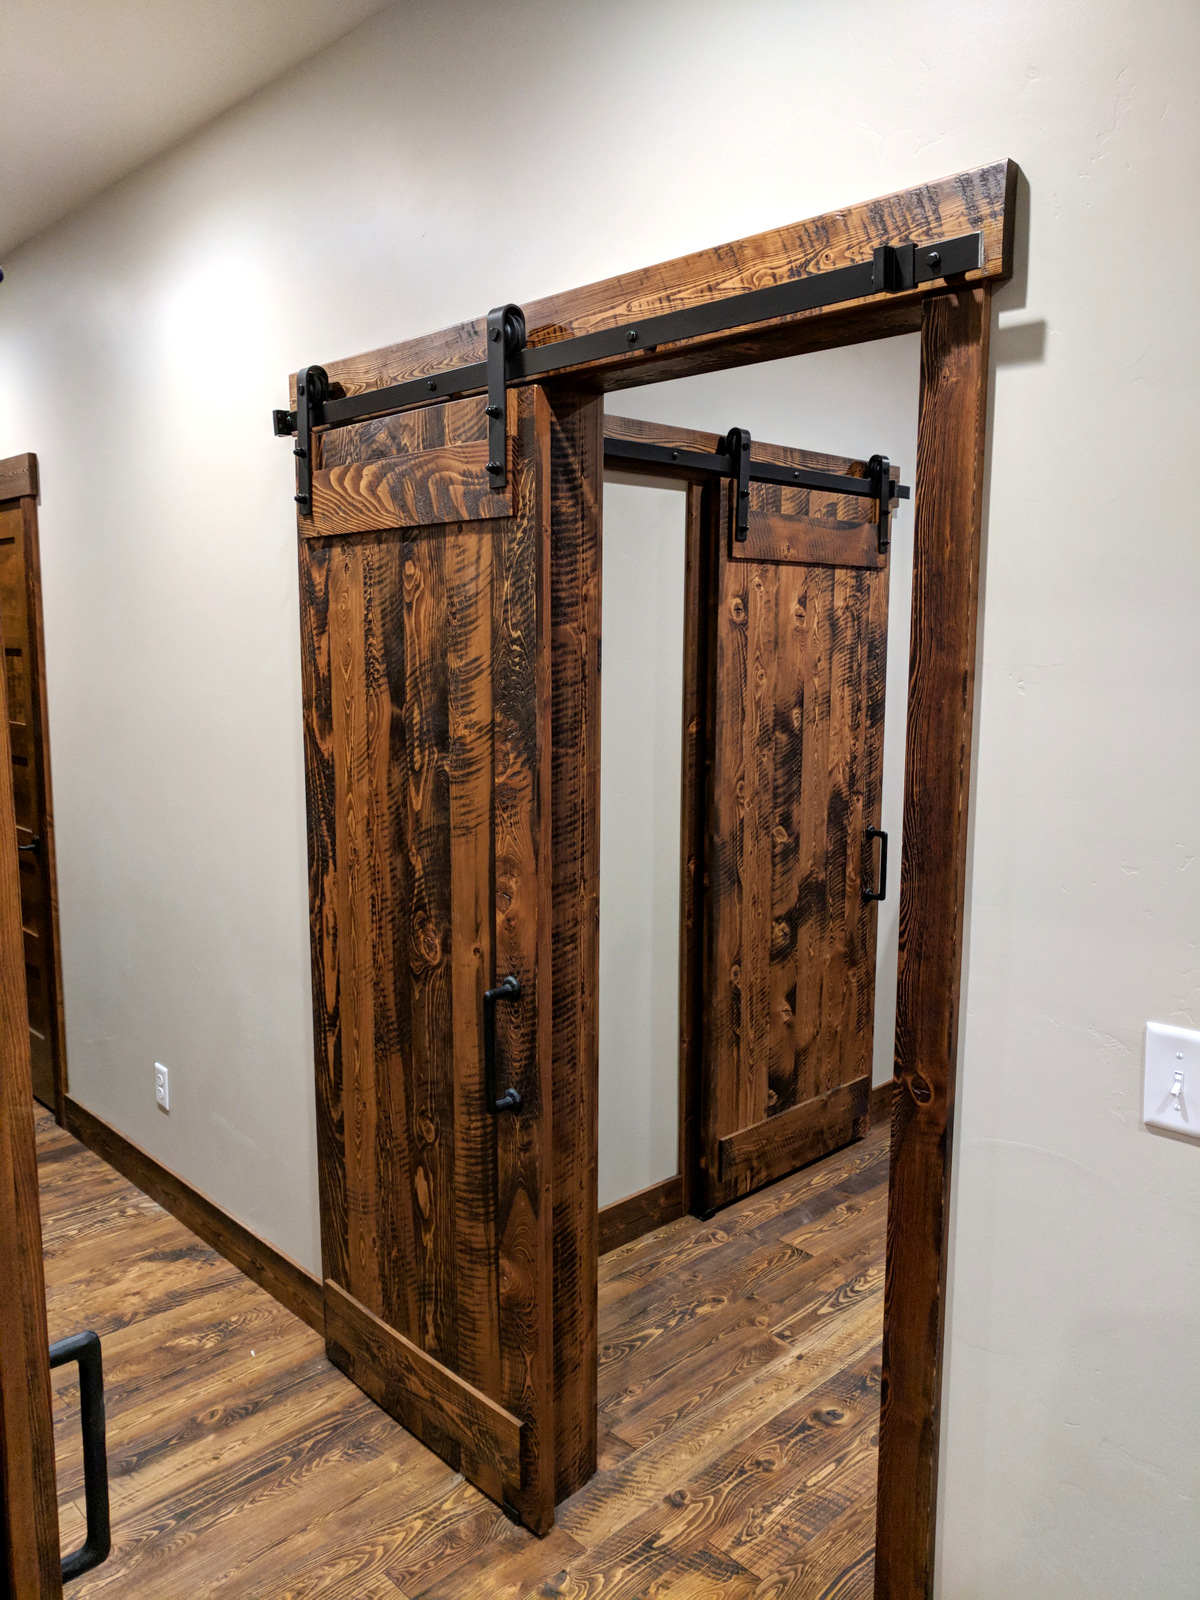 Wood Interior Design Trends Of 2019 Sustainable Lumber Co